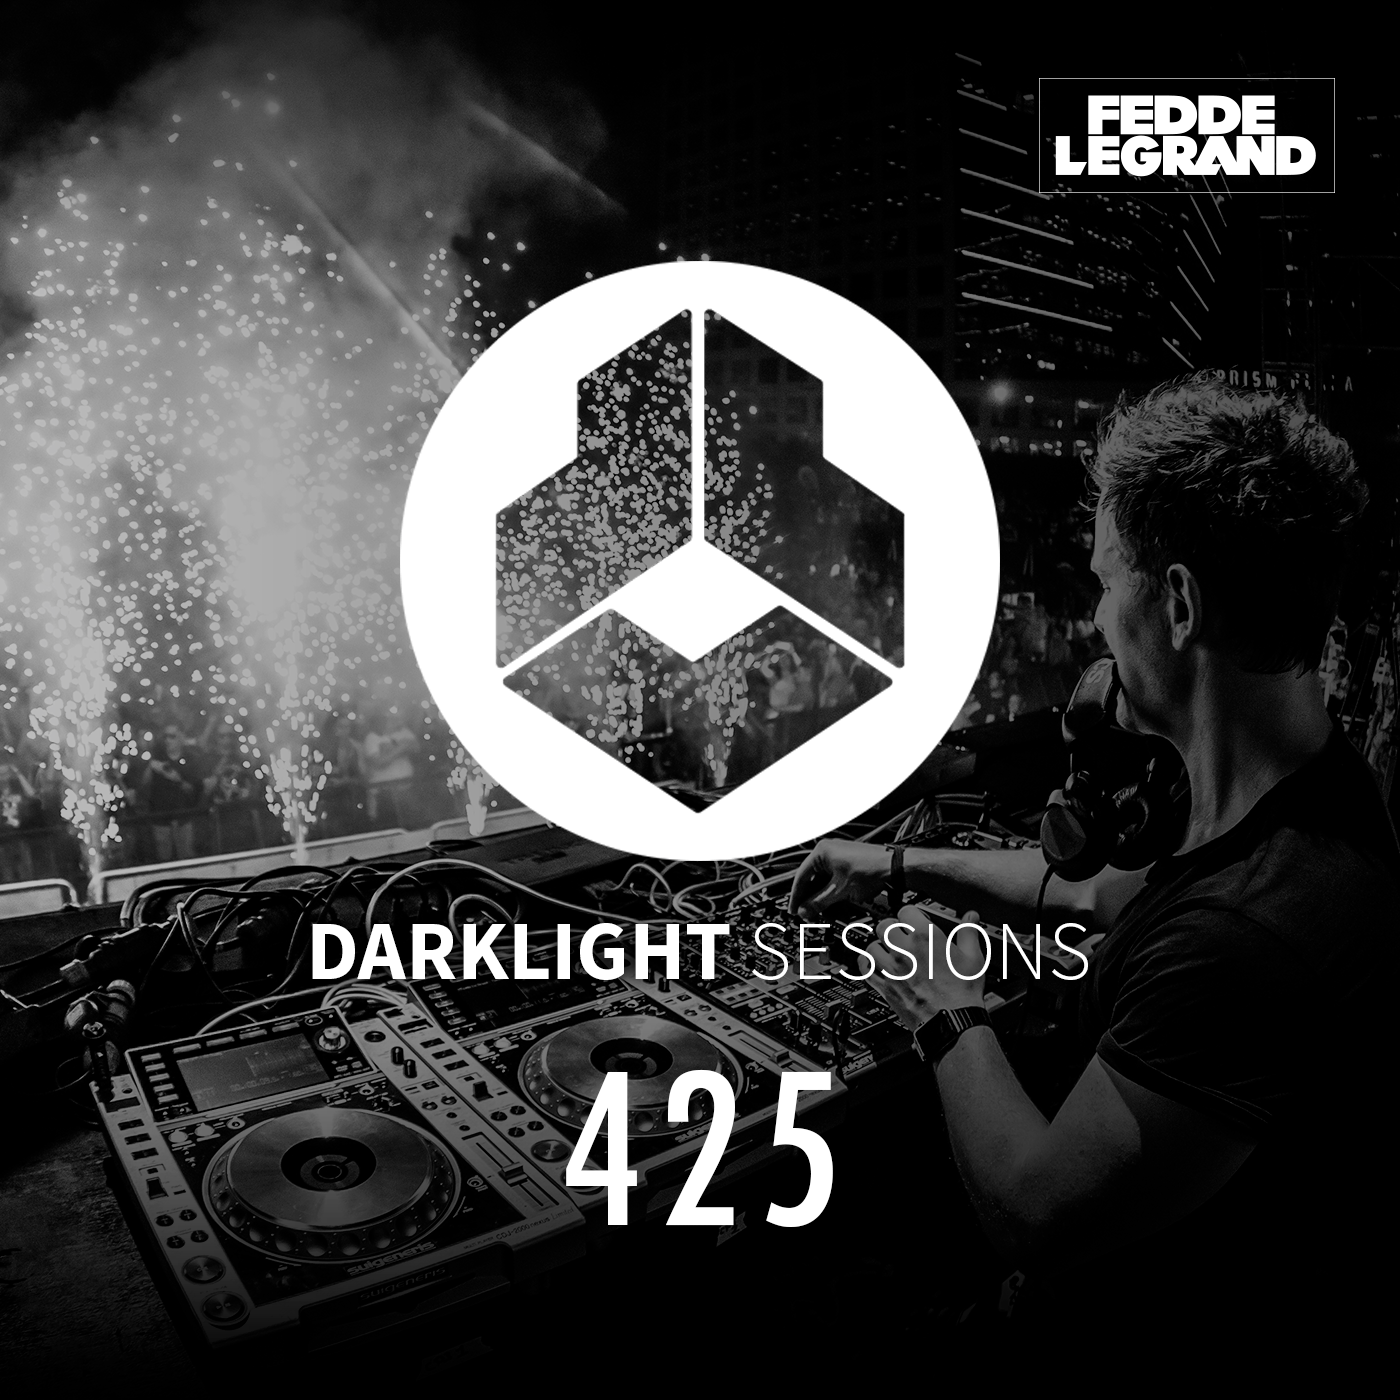 Darklight Sessions 425